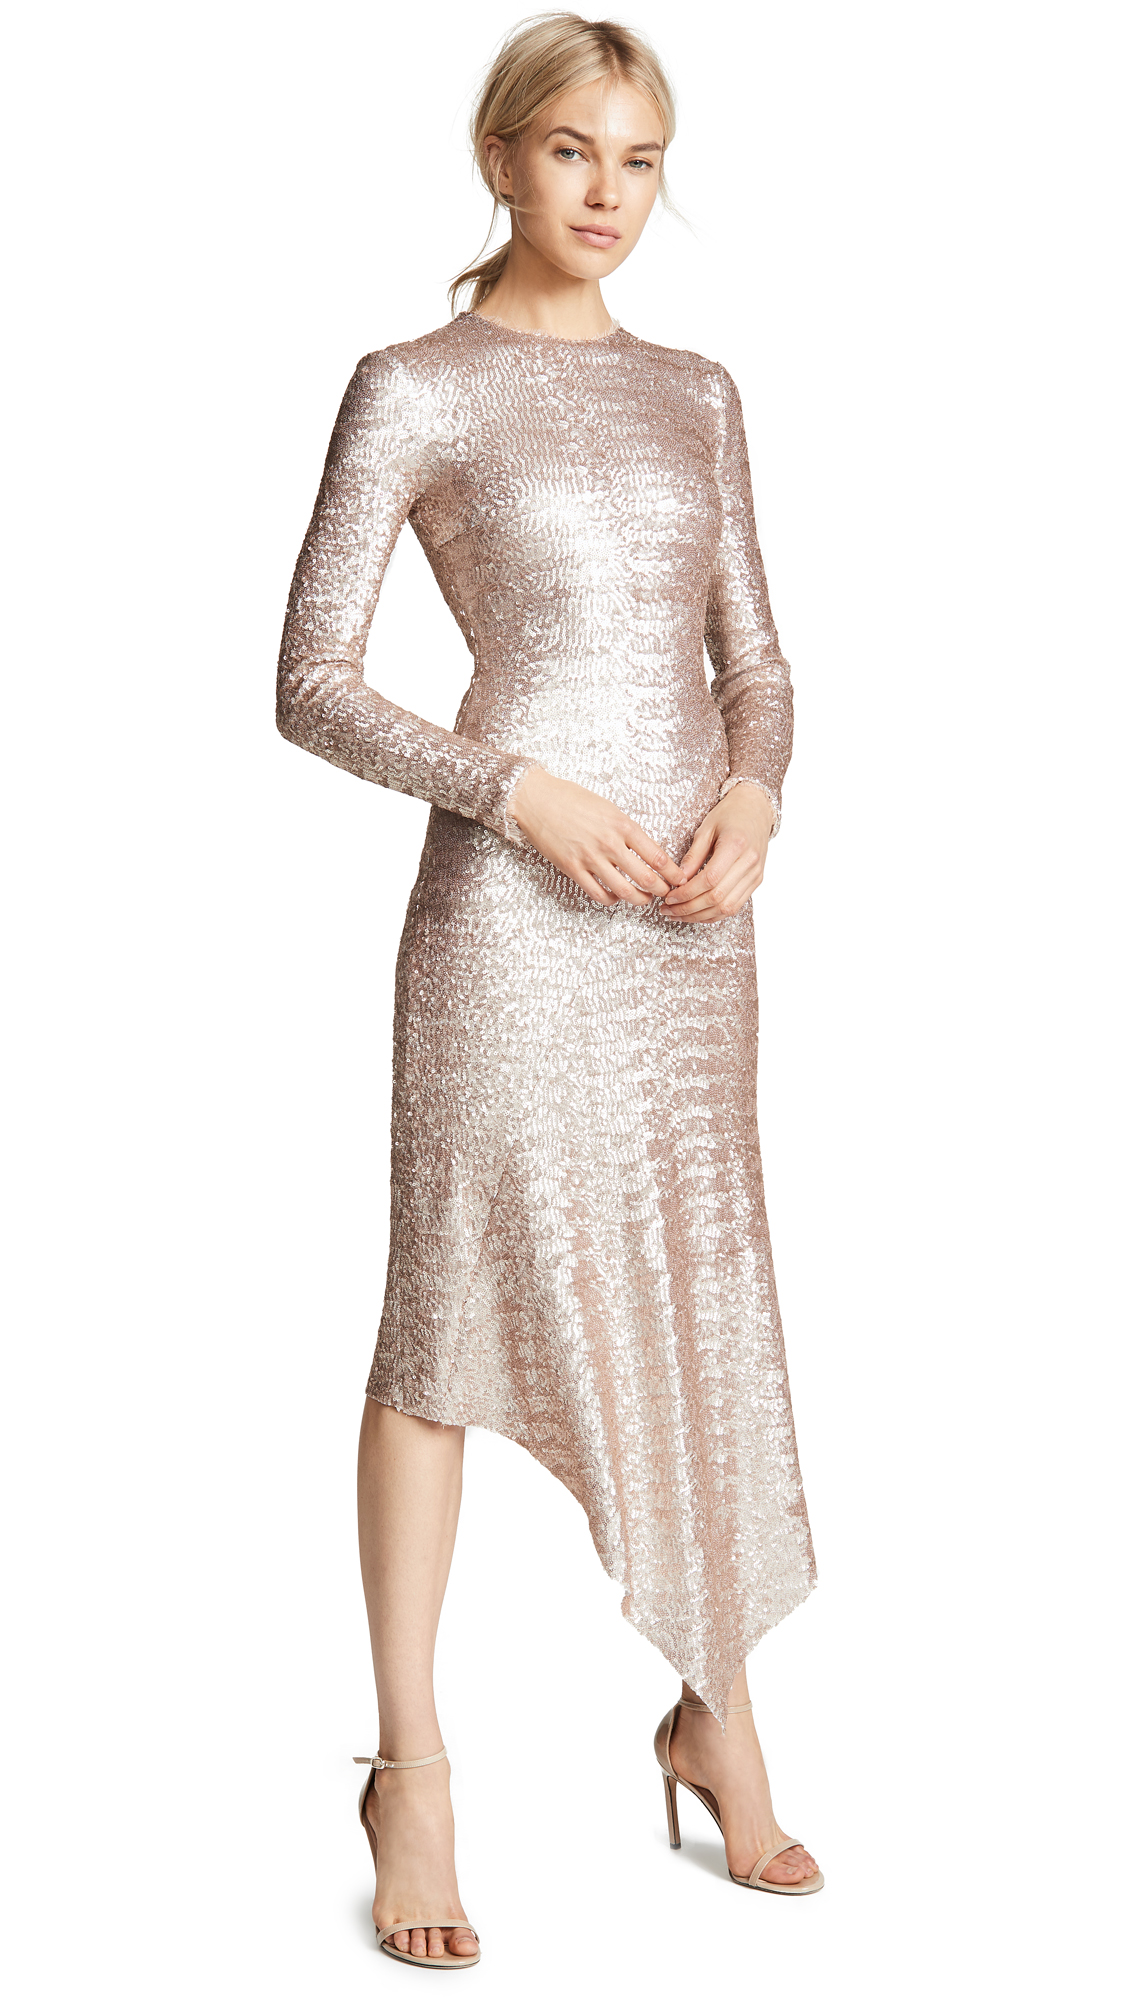 Preen By Thornton Bregazzi Clarissa Sequin Dress In Oyster